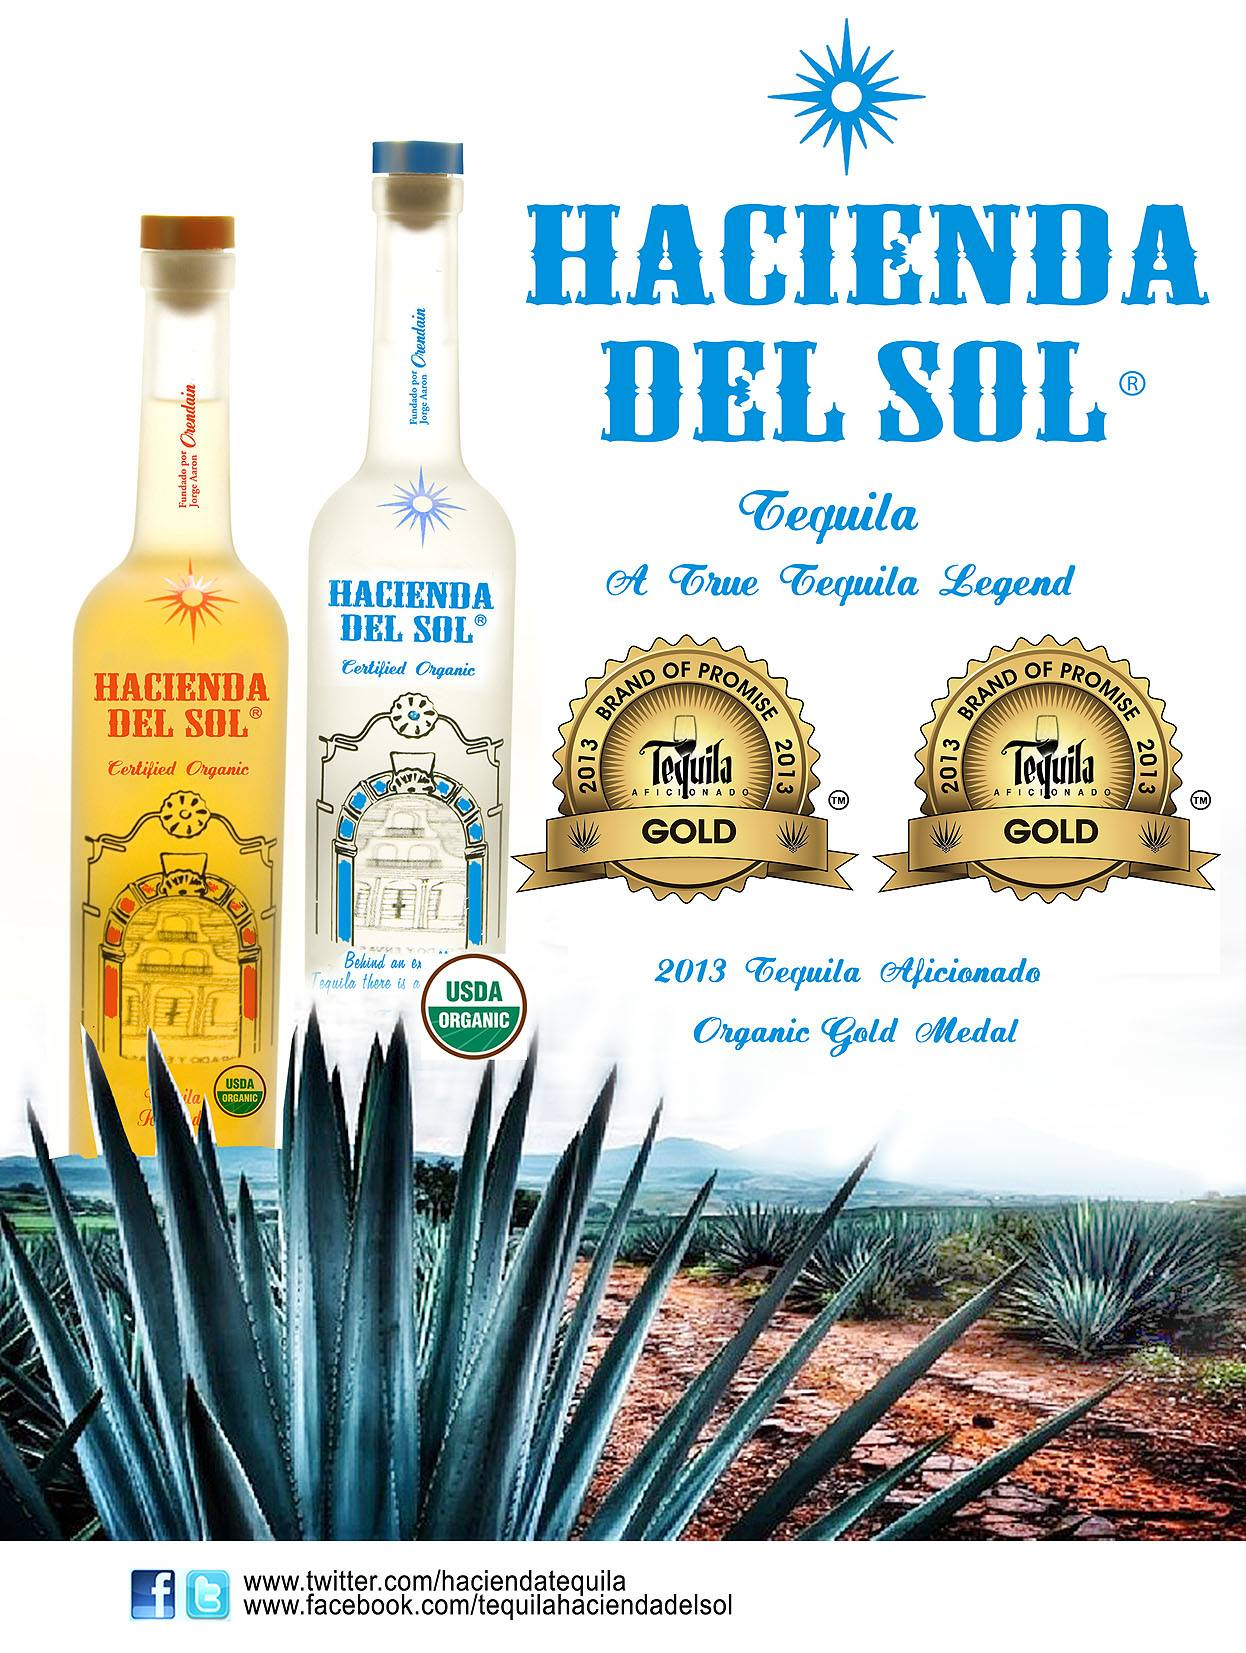 hacienda del sol, tequila, brand of promise